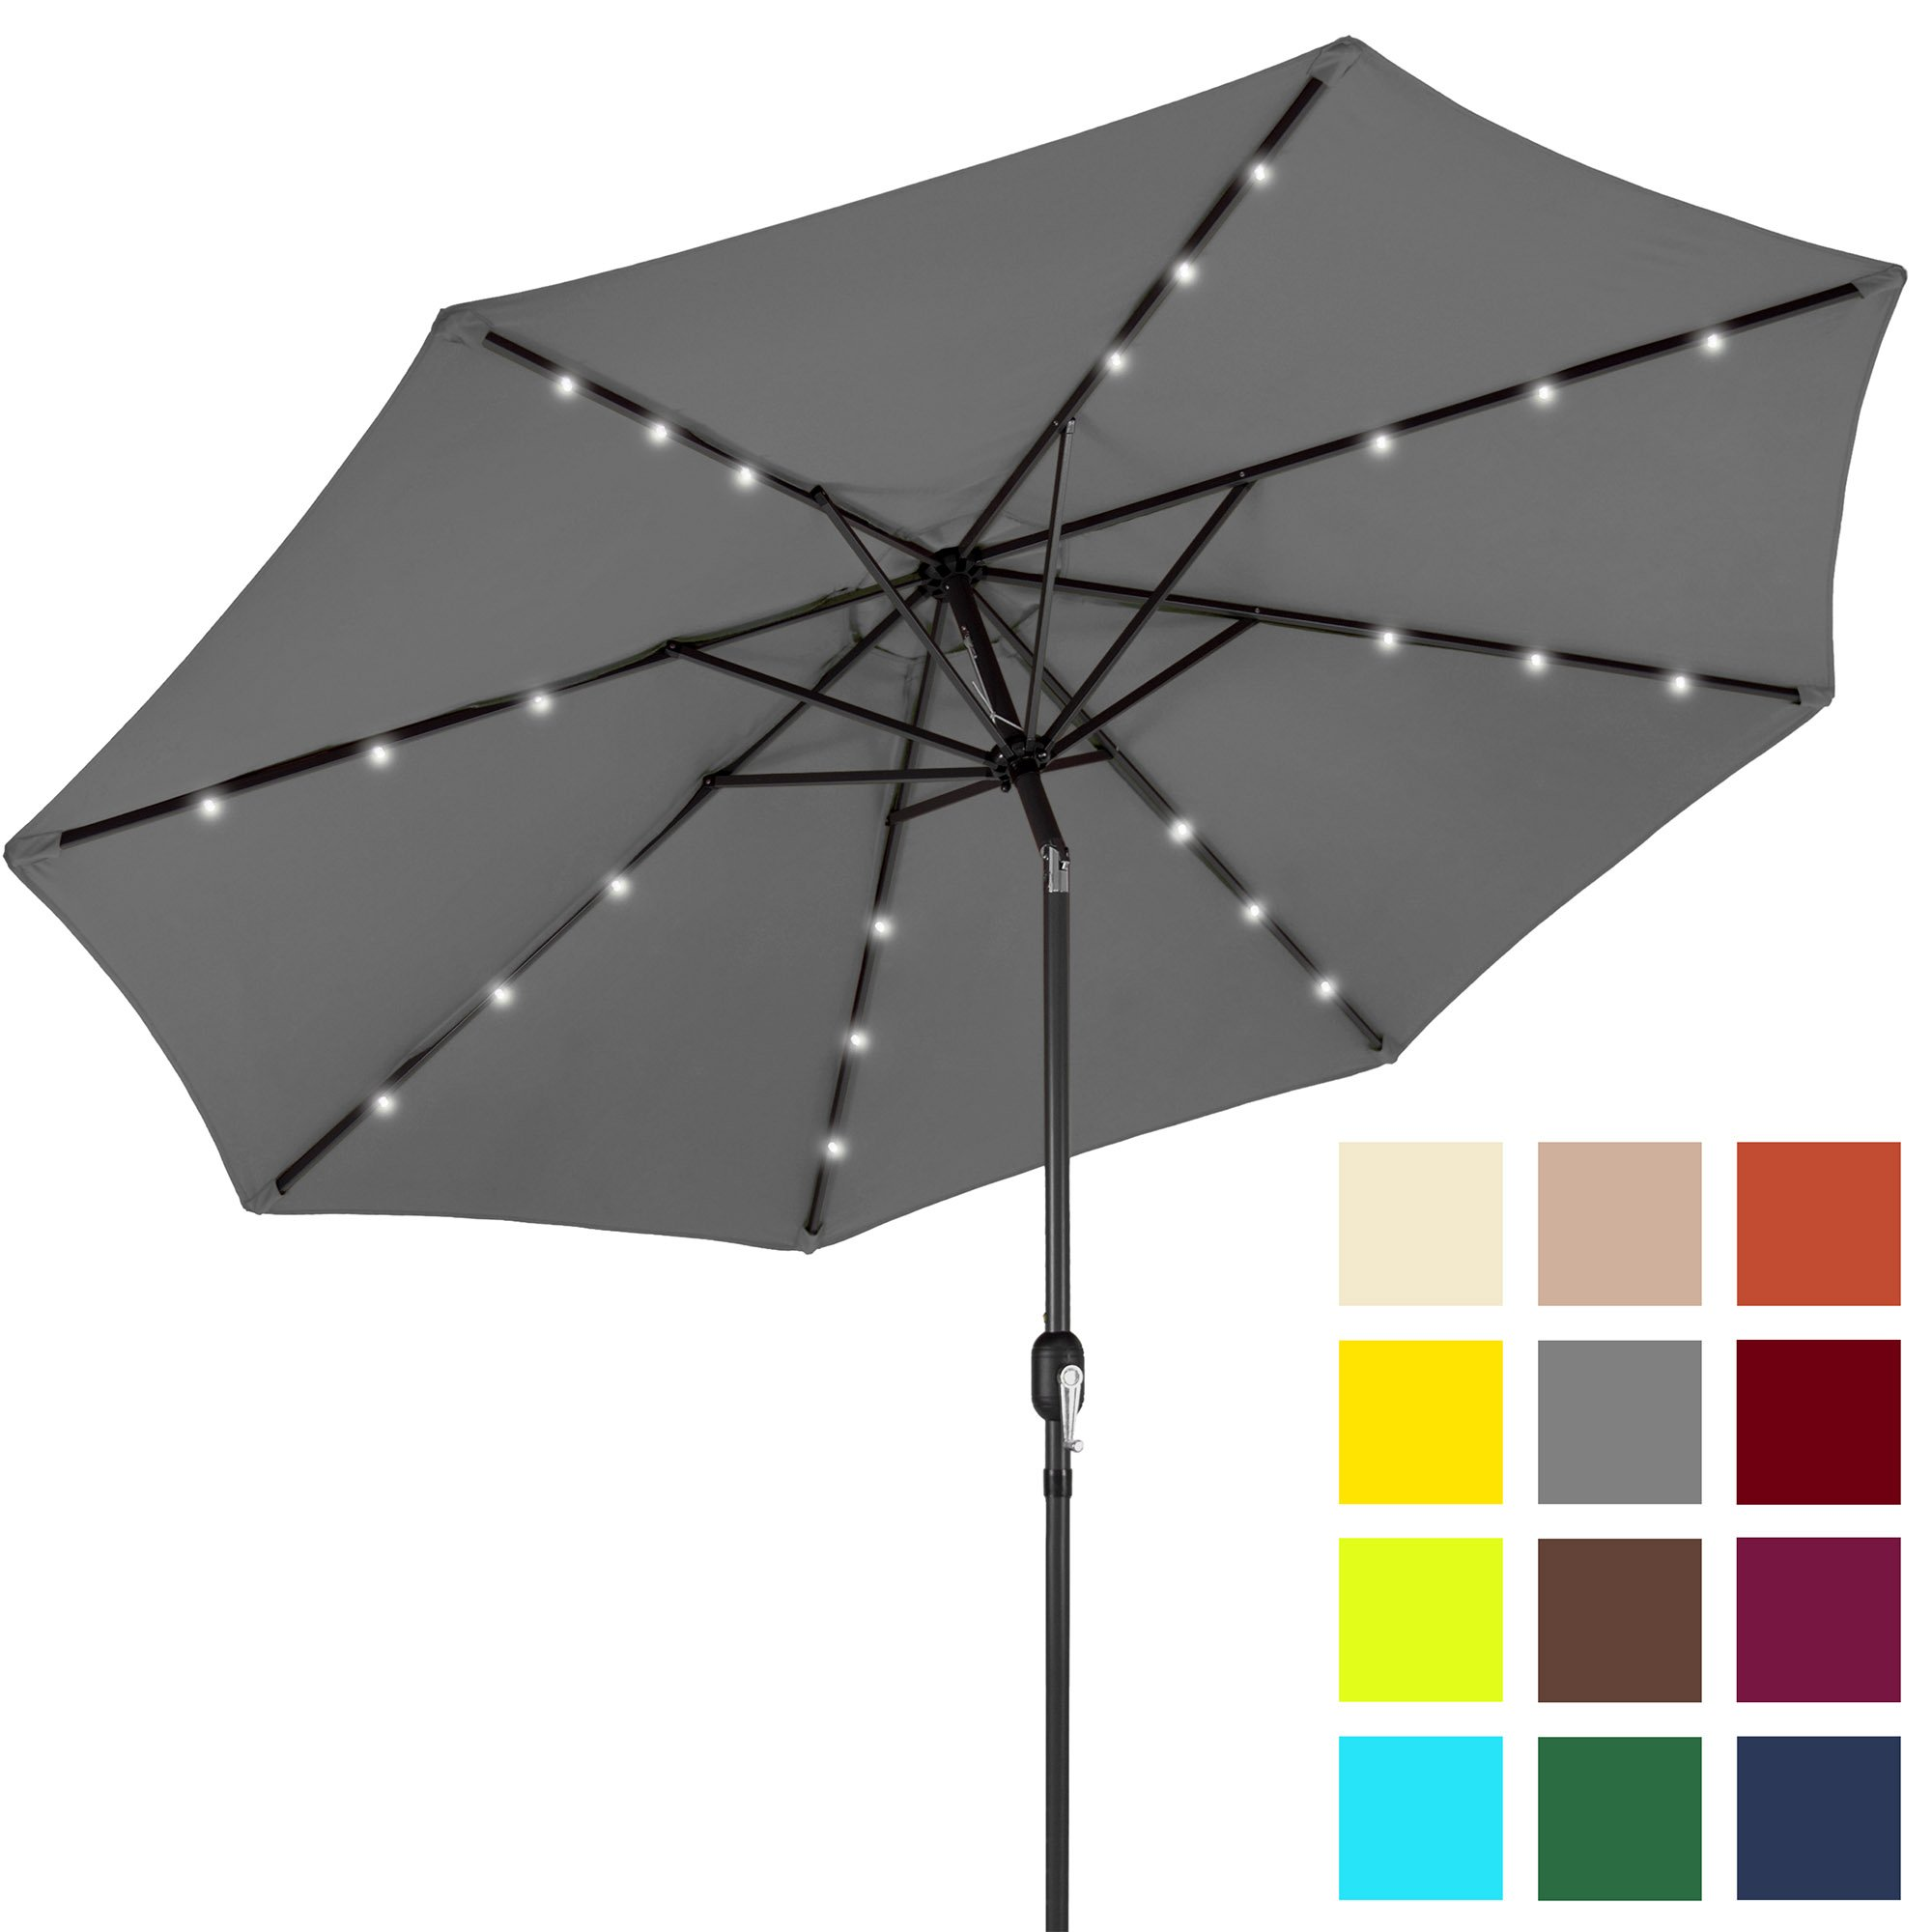 Best Choice Products 10ft Solar LED Lighted Patio Umbrella w/Tilt Adjustment - Gray